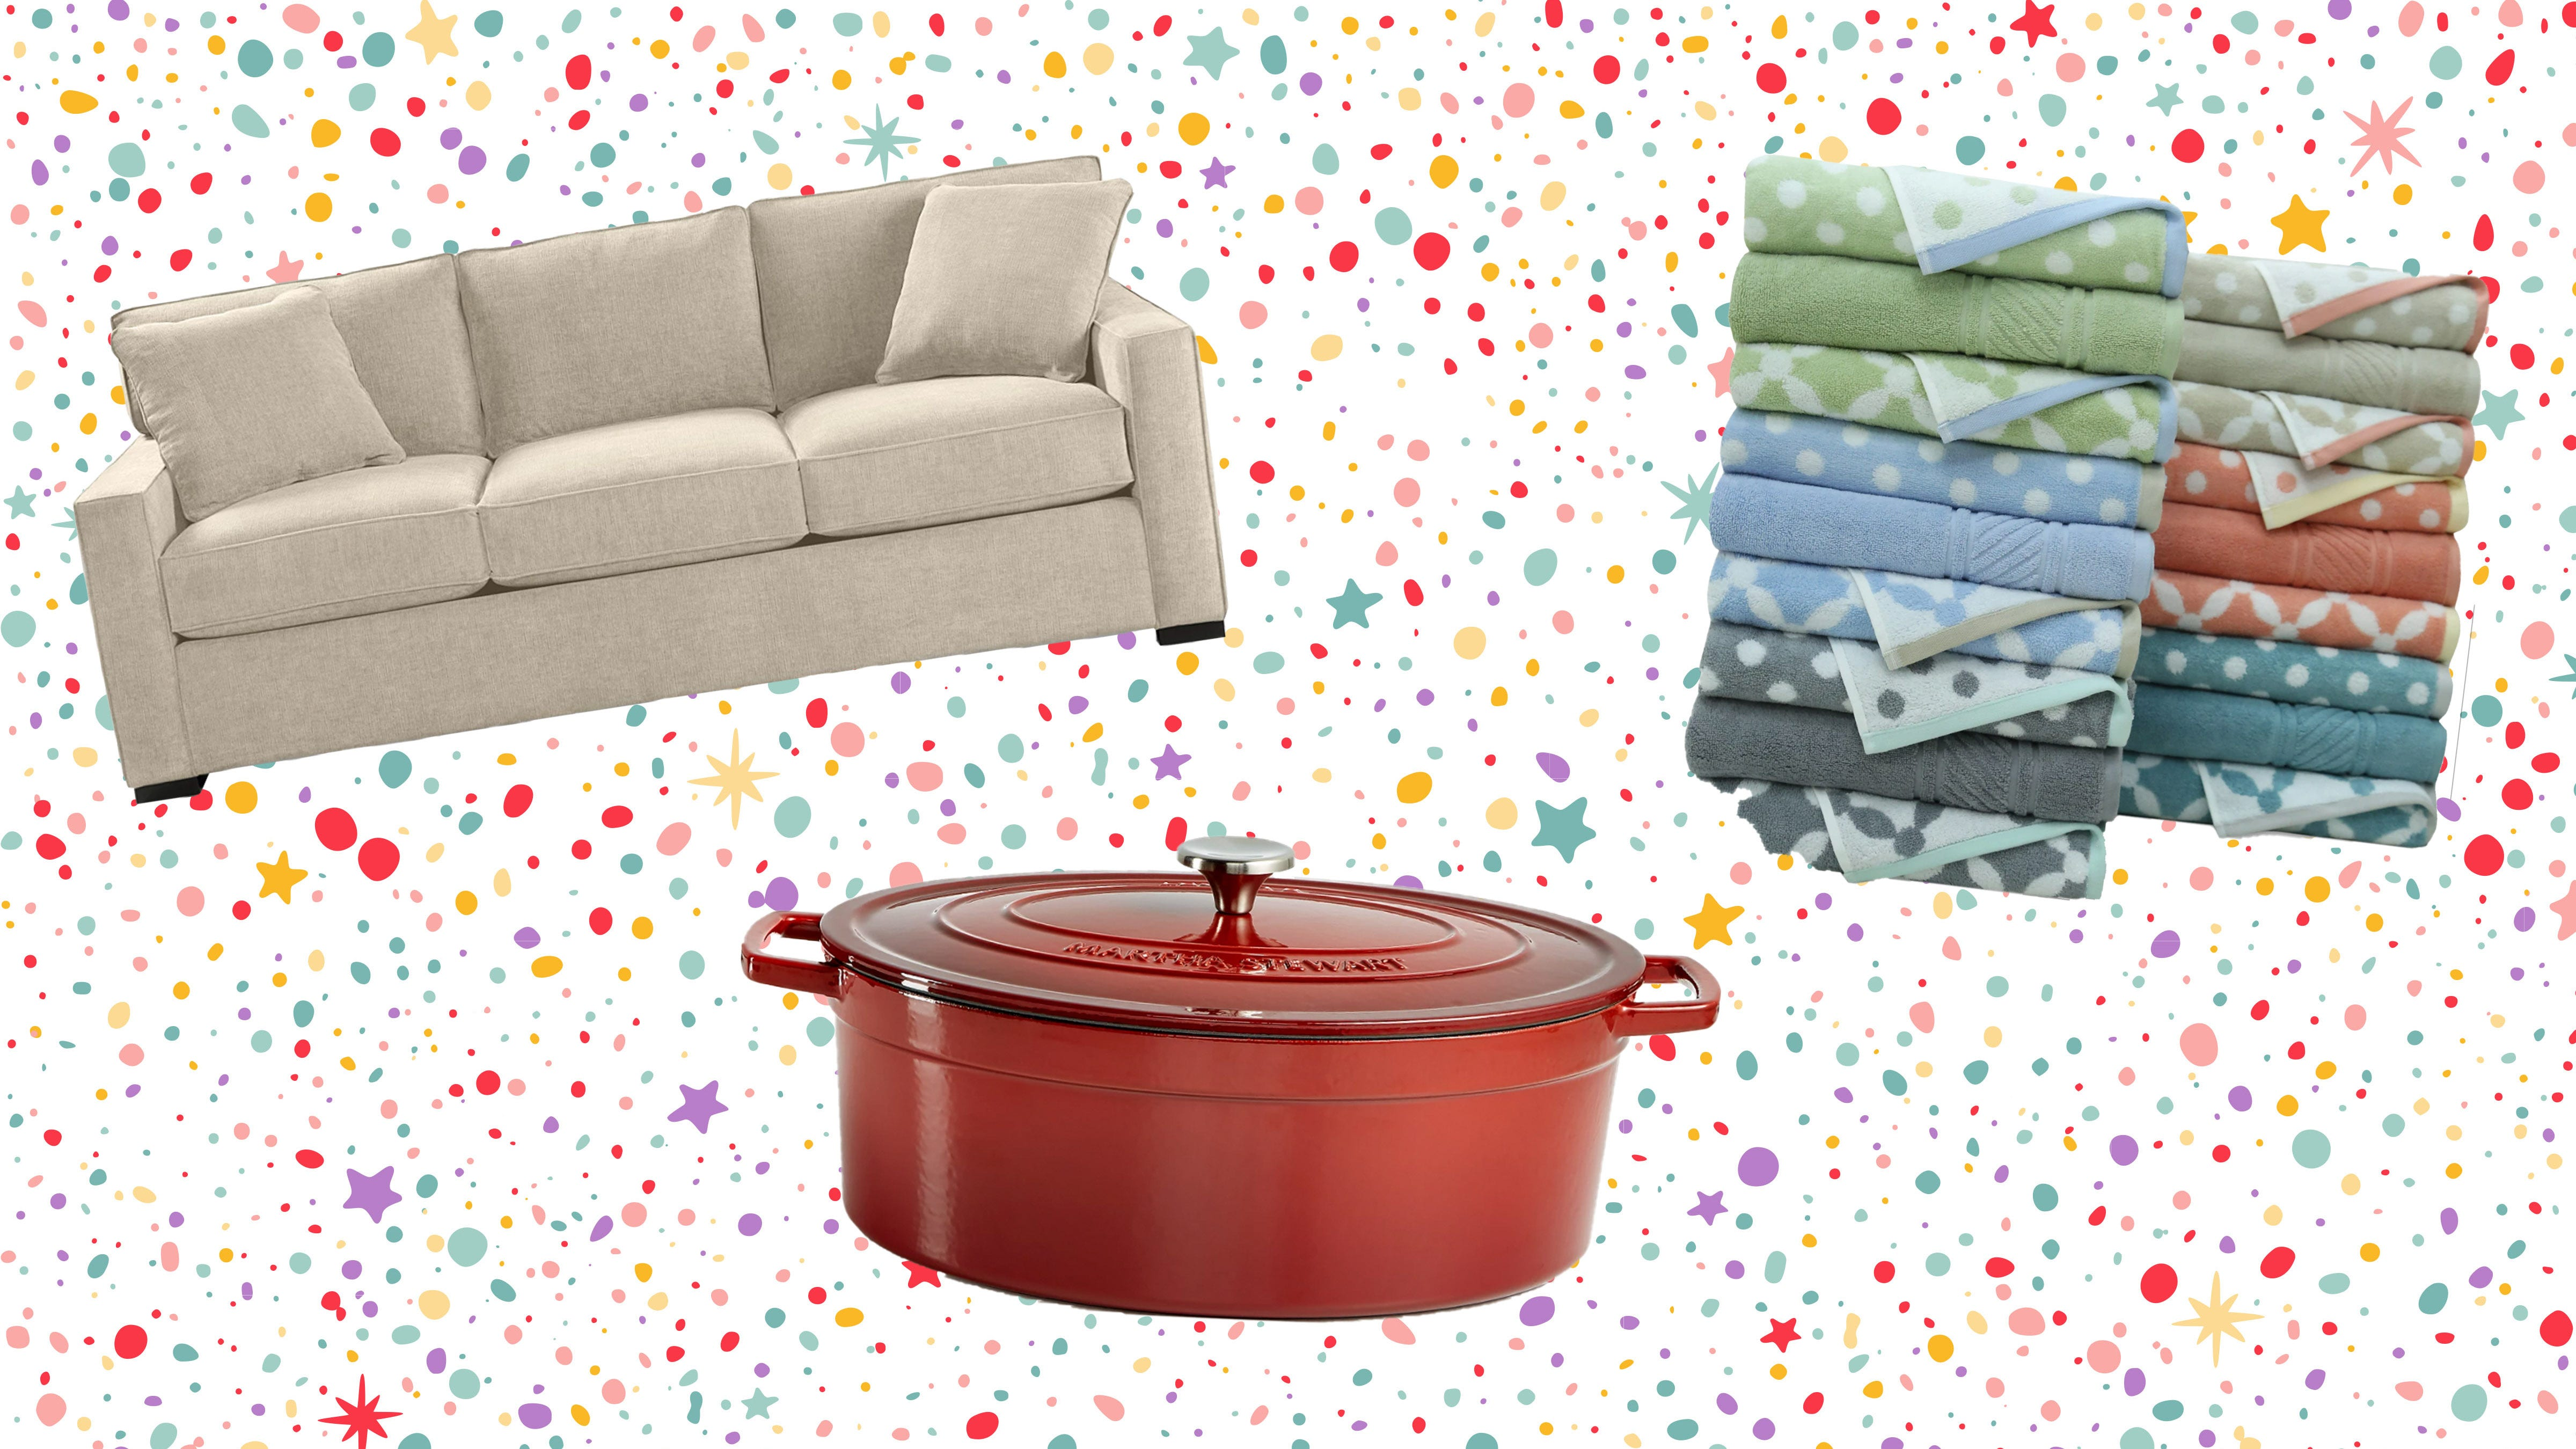 Macy s is having a monster 4th of July sale with deals on home goods galore